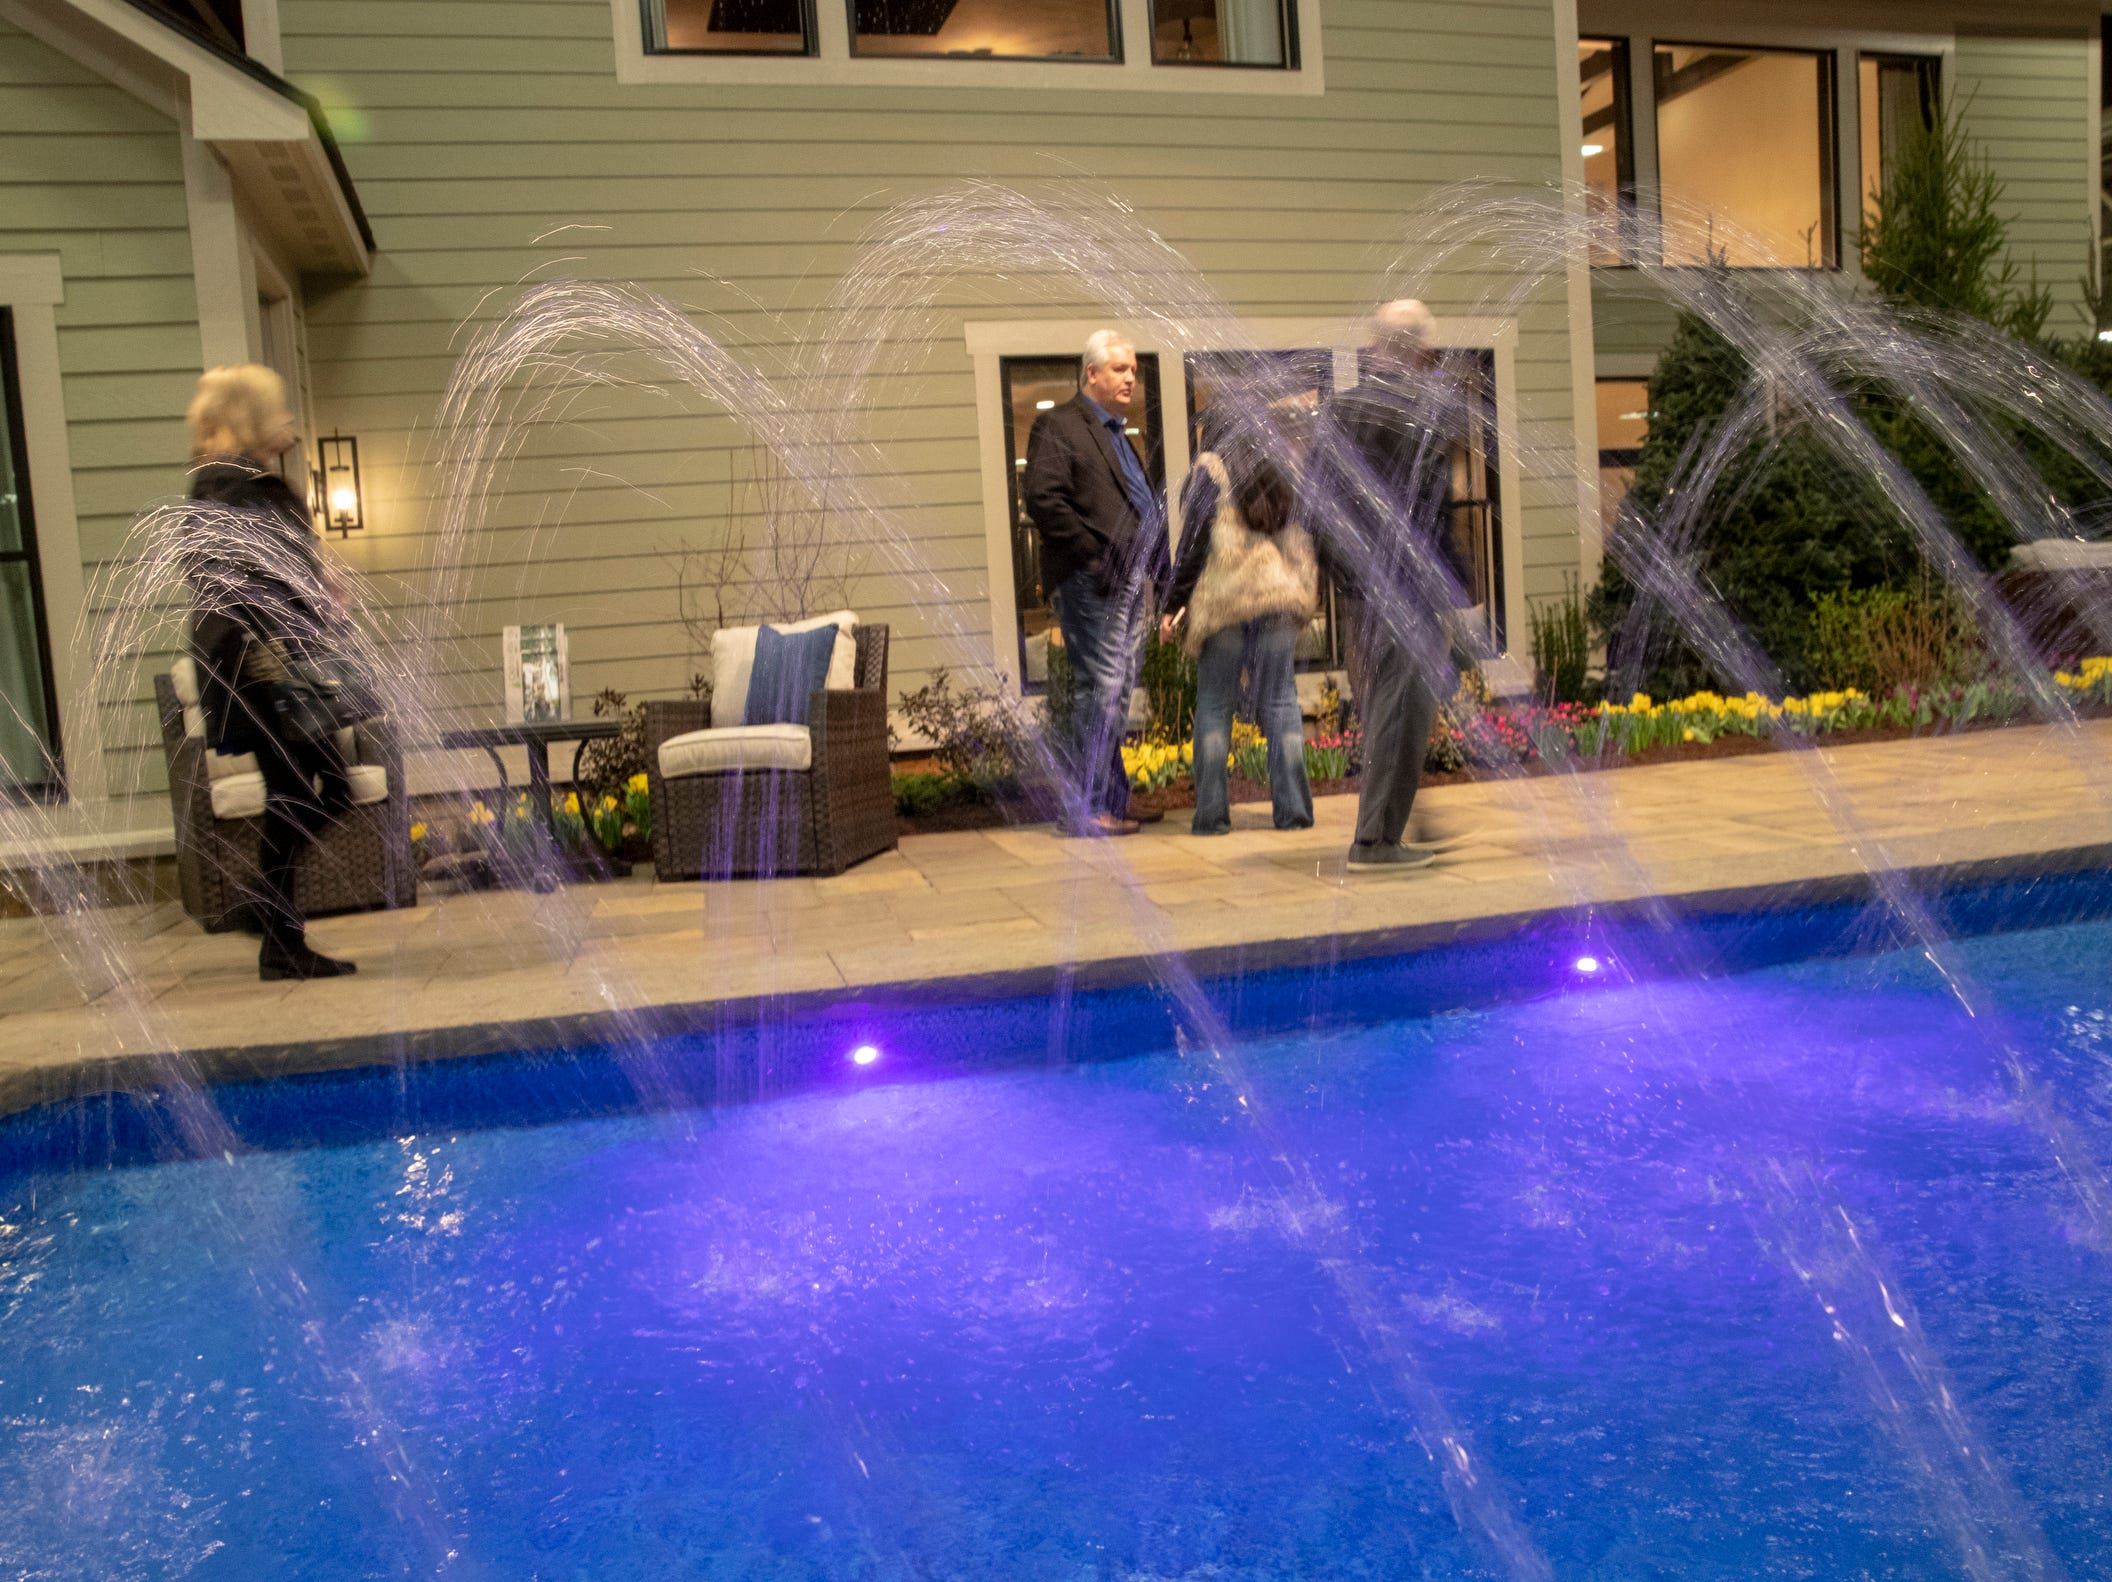 The backyard pool at the Centerpiece Home at the Indianapolis Home Show, Indiana State Fairgrounds, Indianapolis, Thursday, Jan. 17, 2018. The home, which is open through January 27 was built by Davis Homes, with an interior designed by Shelby Upchurch of Luxe Home Interiors, and landscaping by Calvin Landscape.